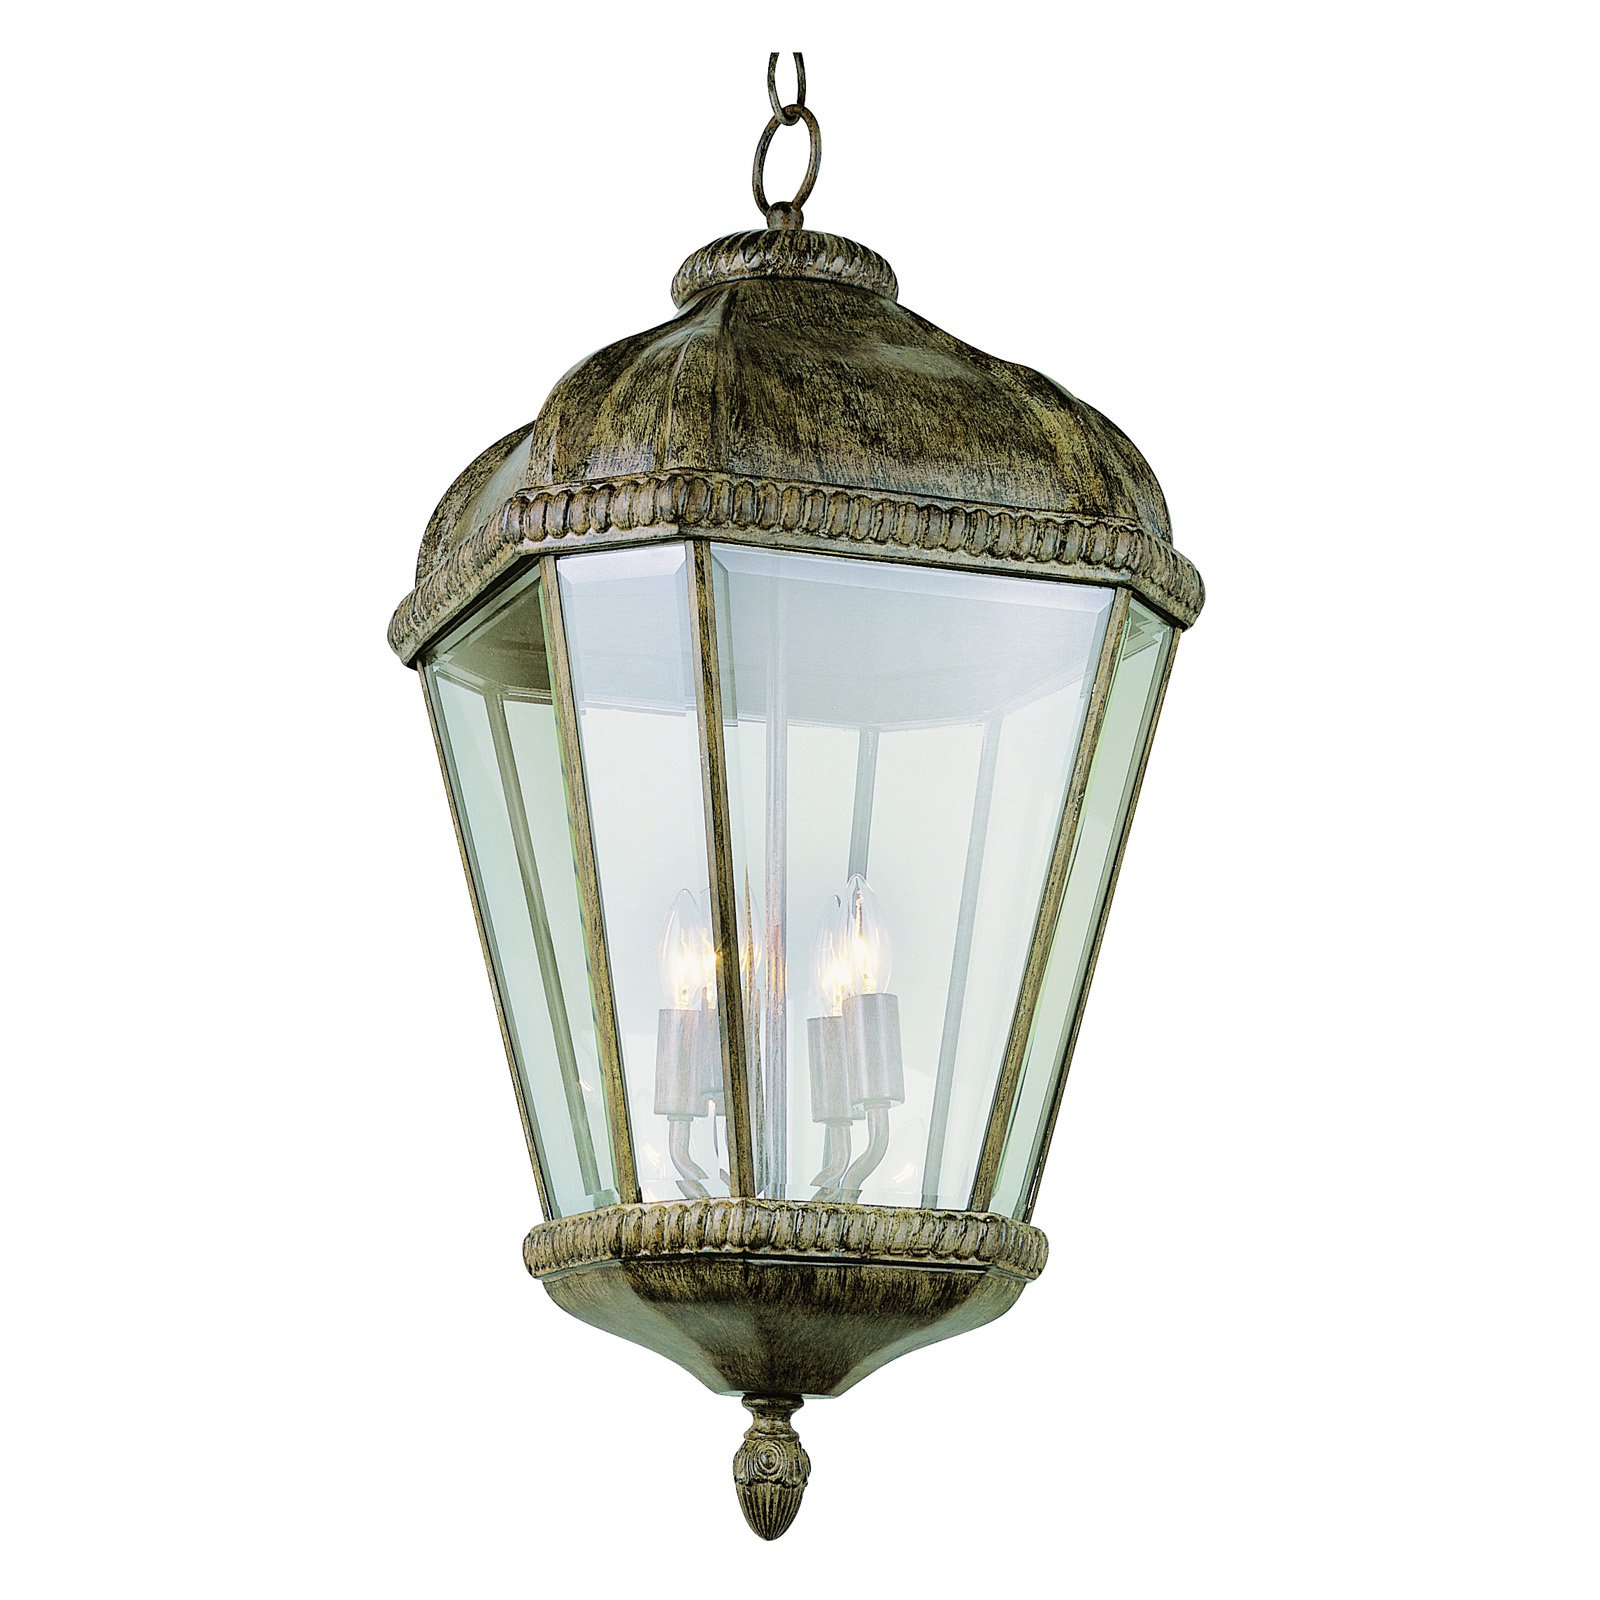 Trans Globe 5156 BRT Hanging Lantern Burnished Rust 13W in. by Overstock